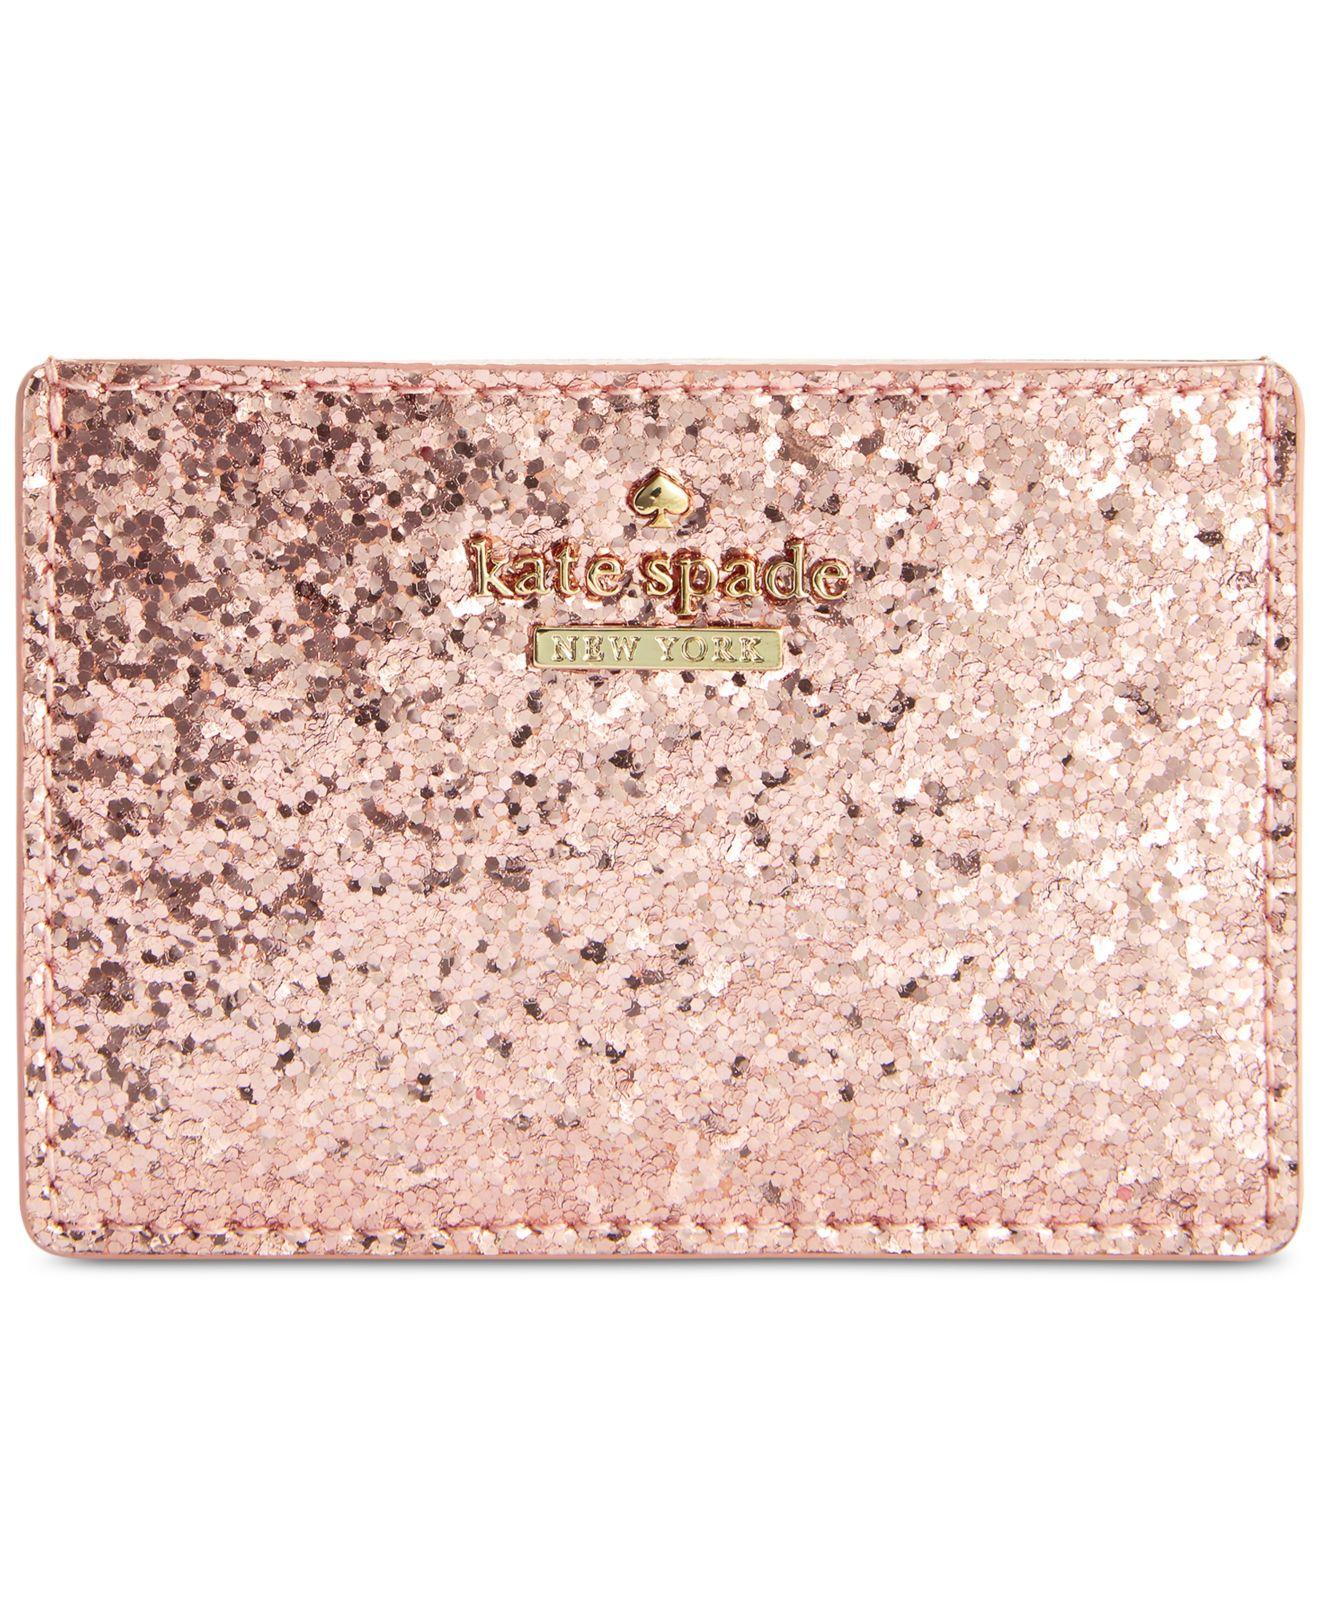 kate spade card holder glitter  Glitter Bug Card Holder